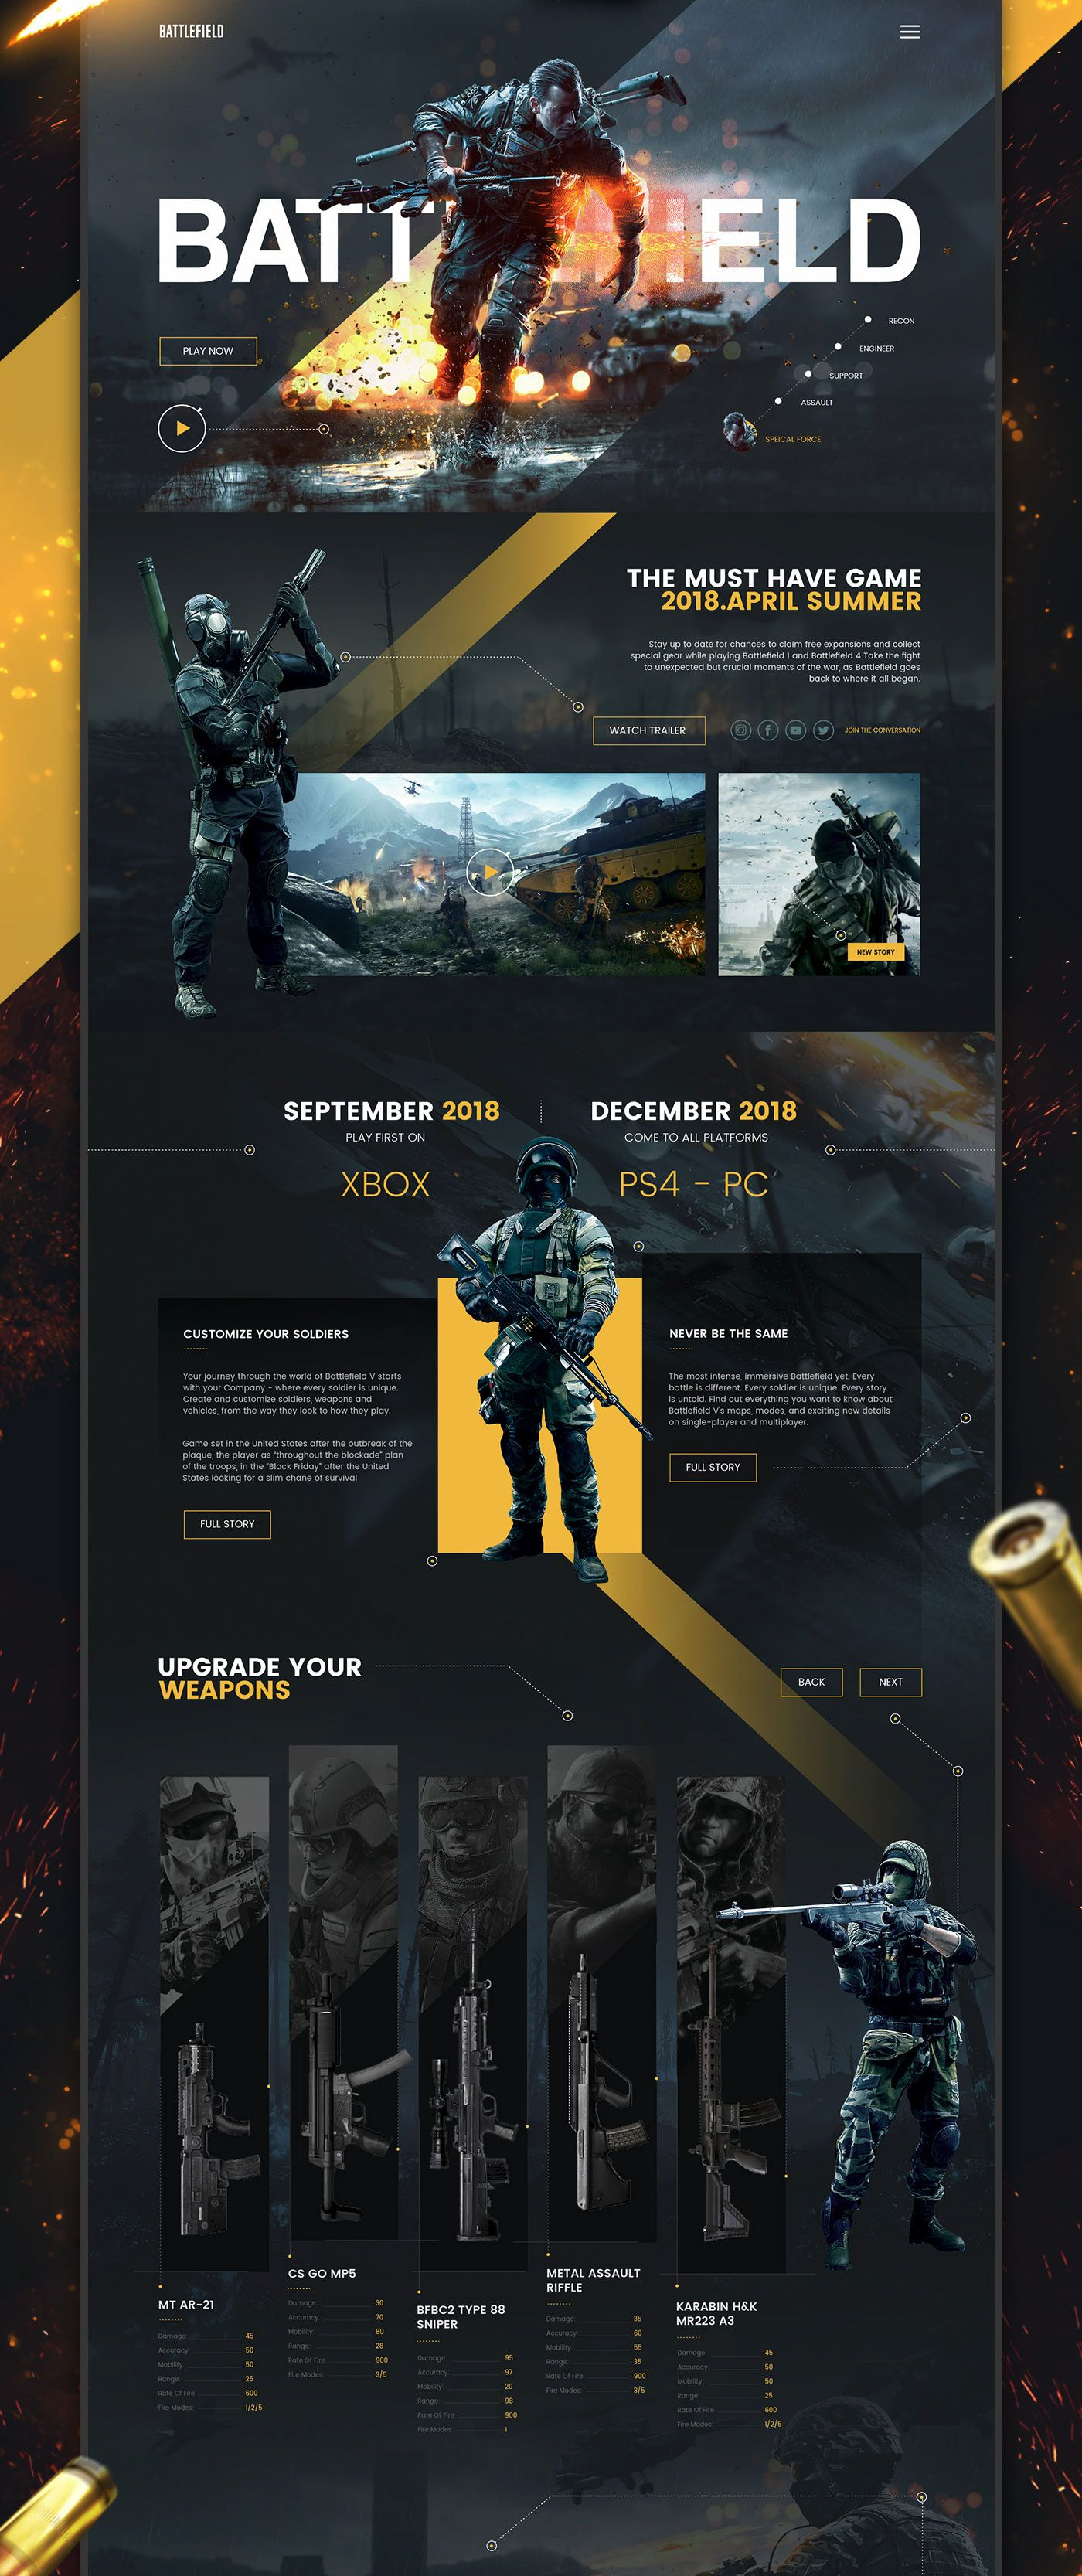 Battlefield UI/UX Design / Web Design on Behance #interfacedesign